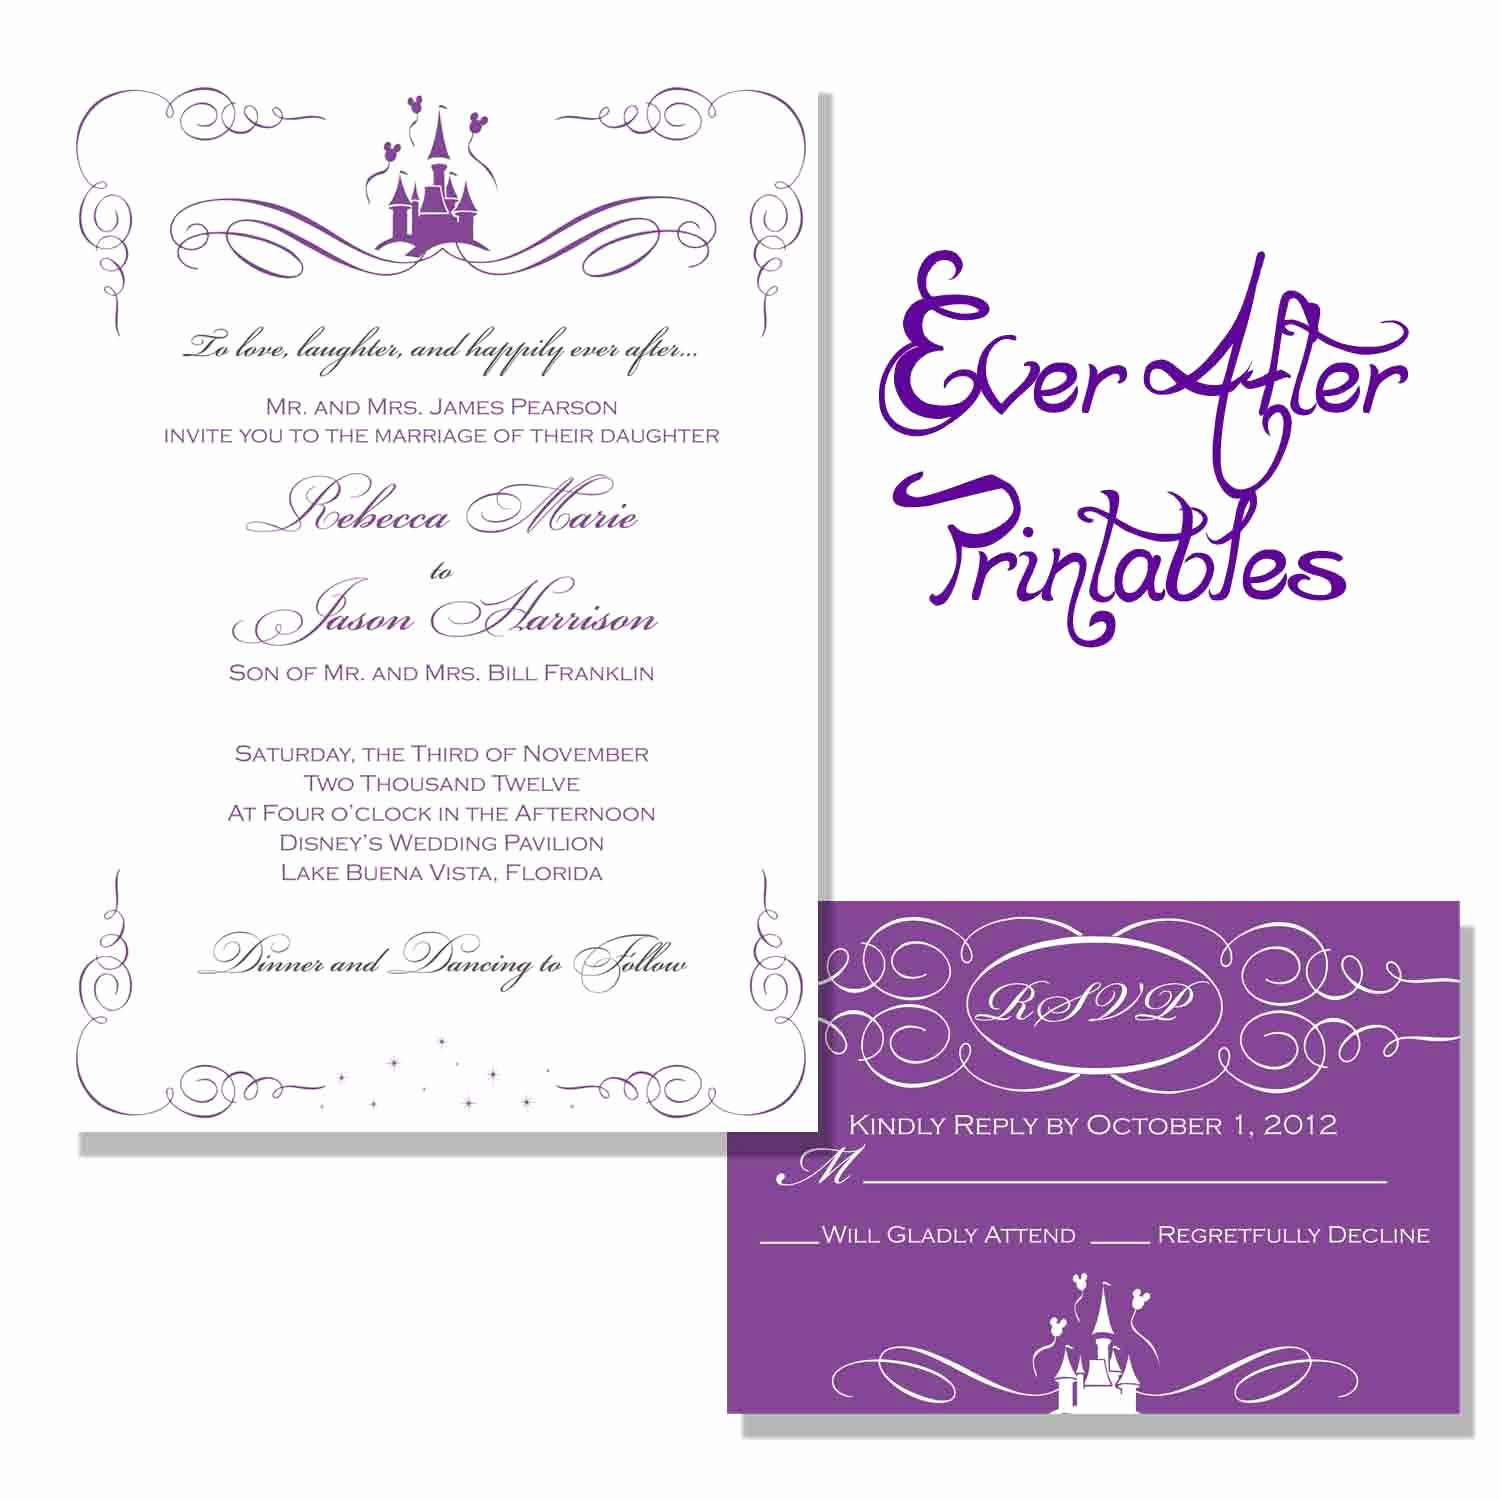 Word Wedding Invitation Template Beautiful Engagement Party Invitation Word Templates Free Card